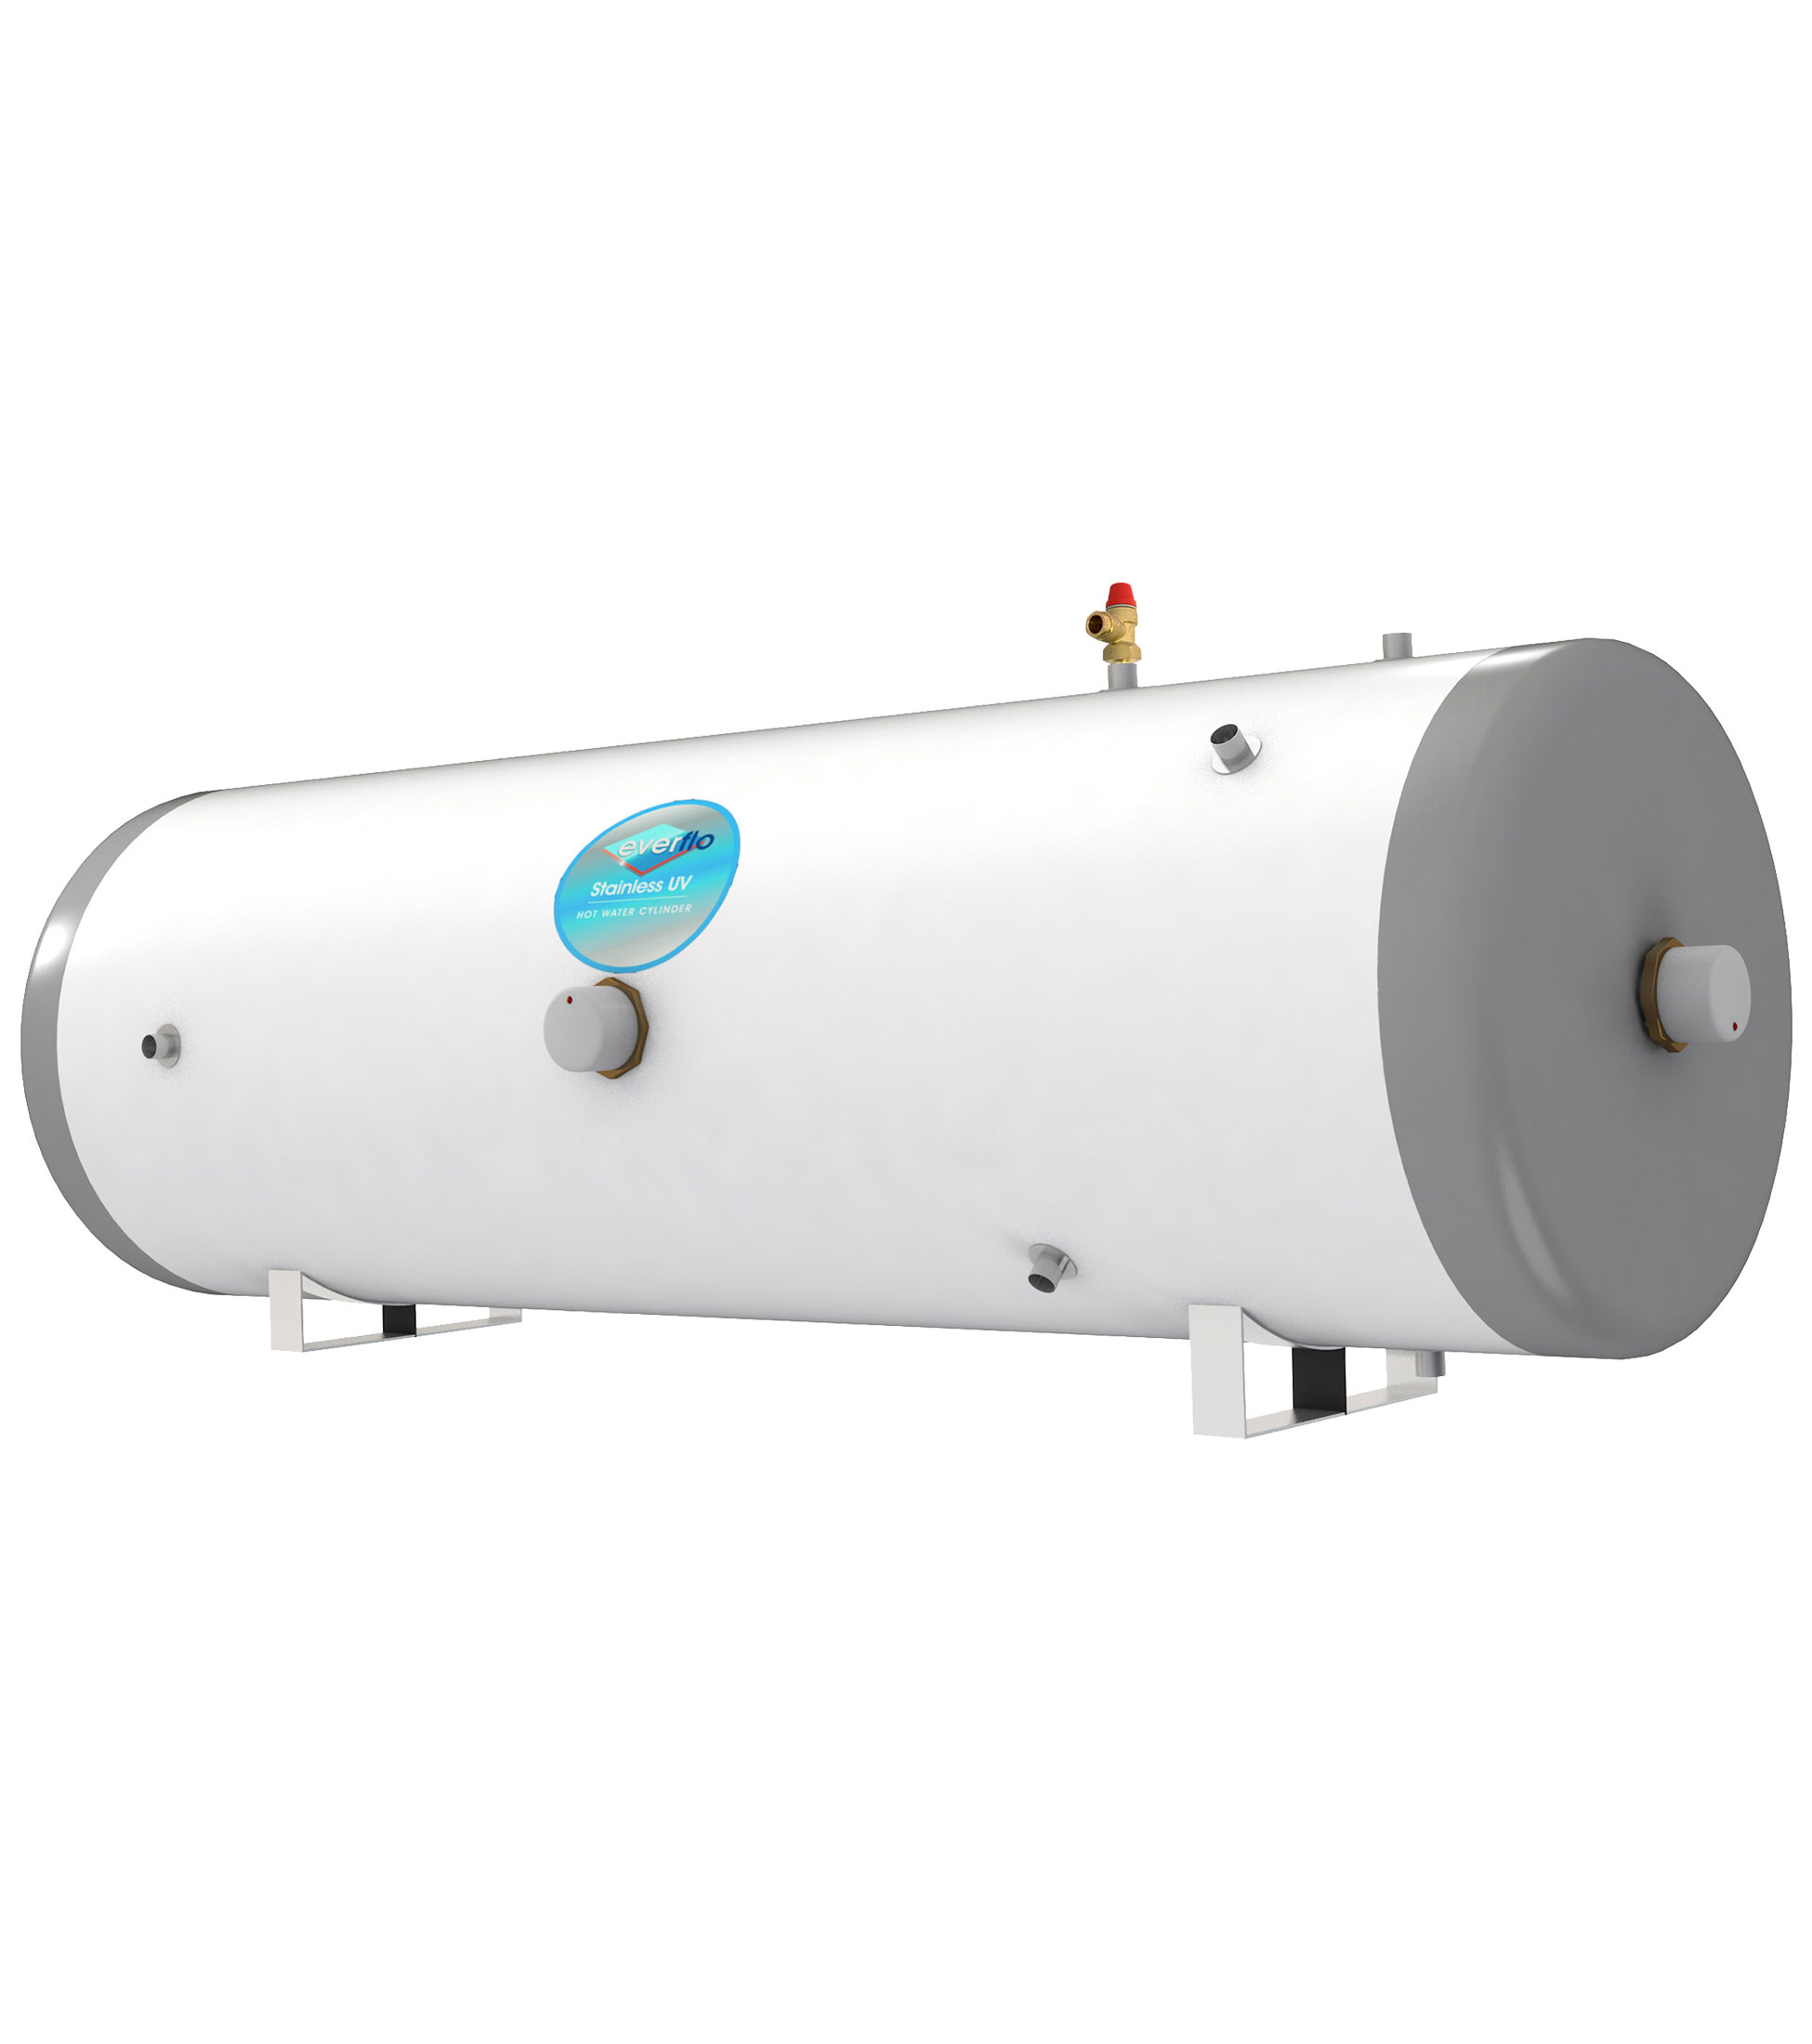 Everflo - Stainless 300L Horizontal Indirect Unvented Hot Water ...